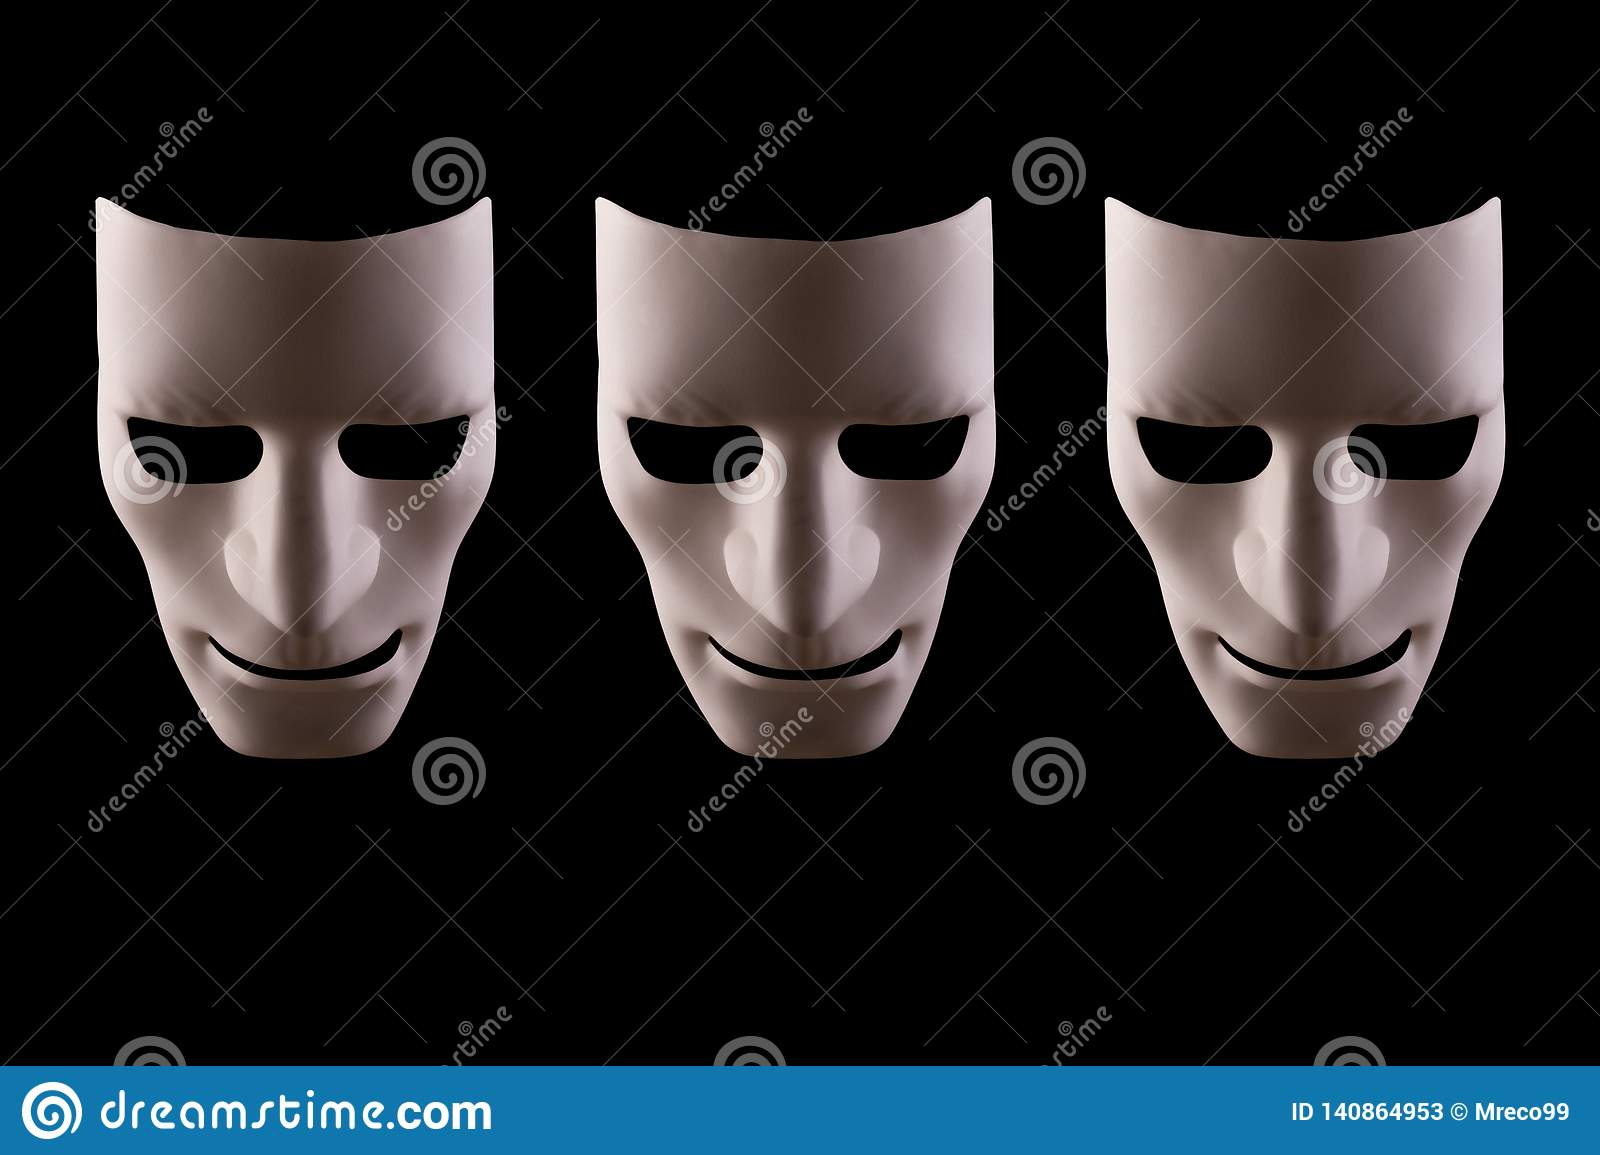 Three blank robot faces on a black background